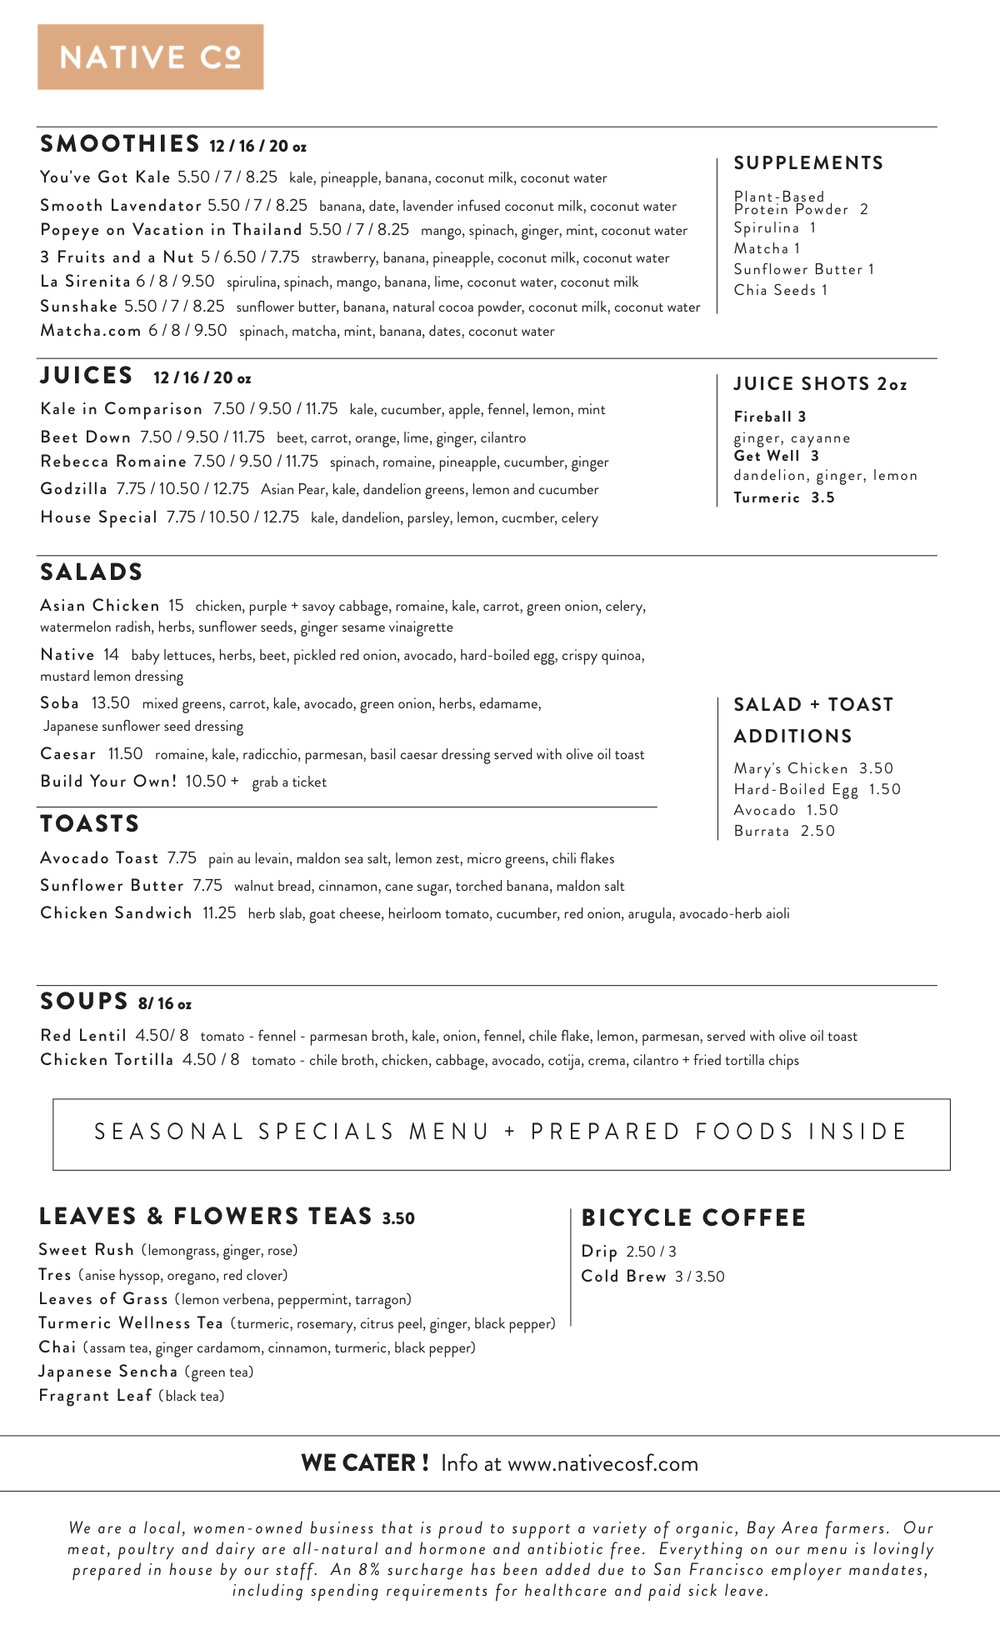 NativeMenu3_13 (1).jpg